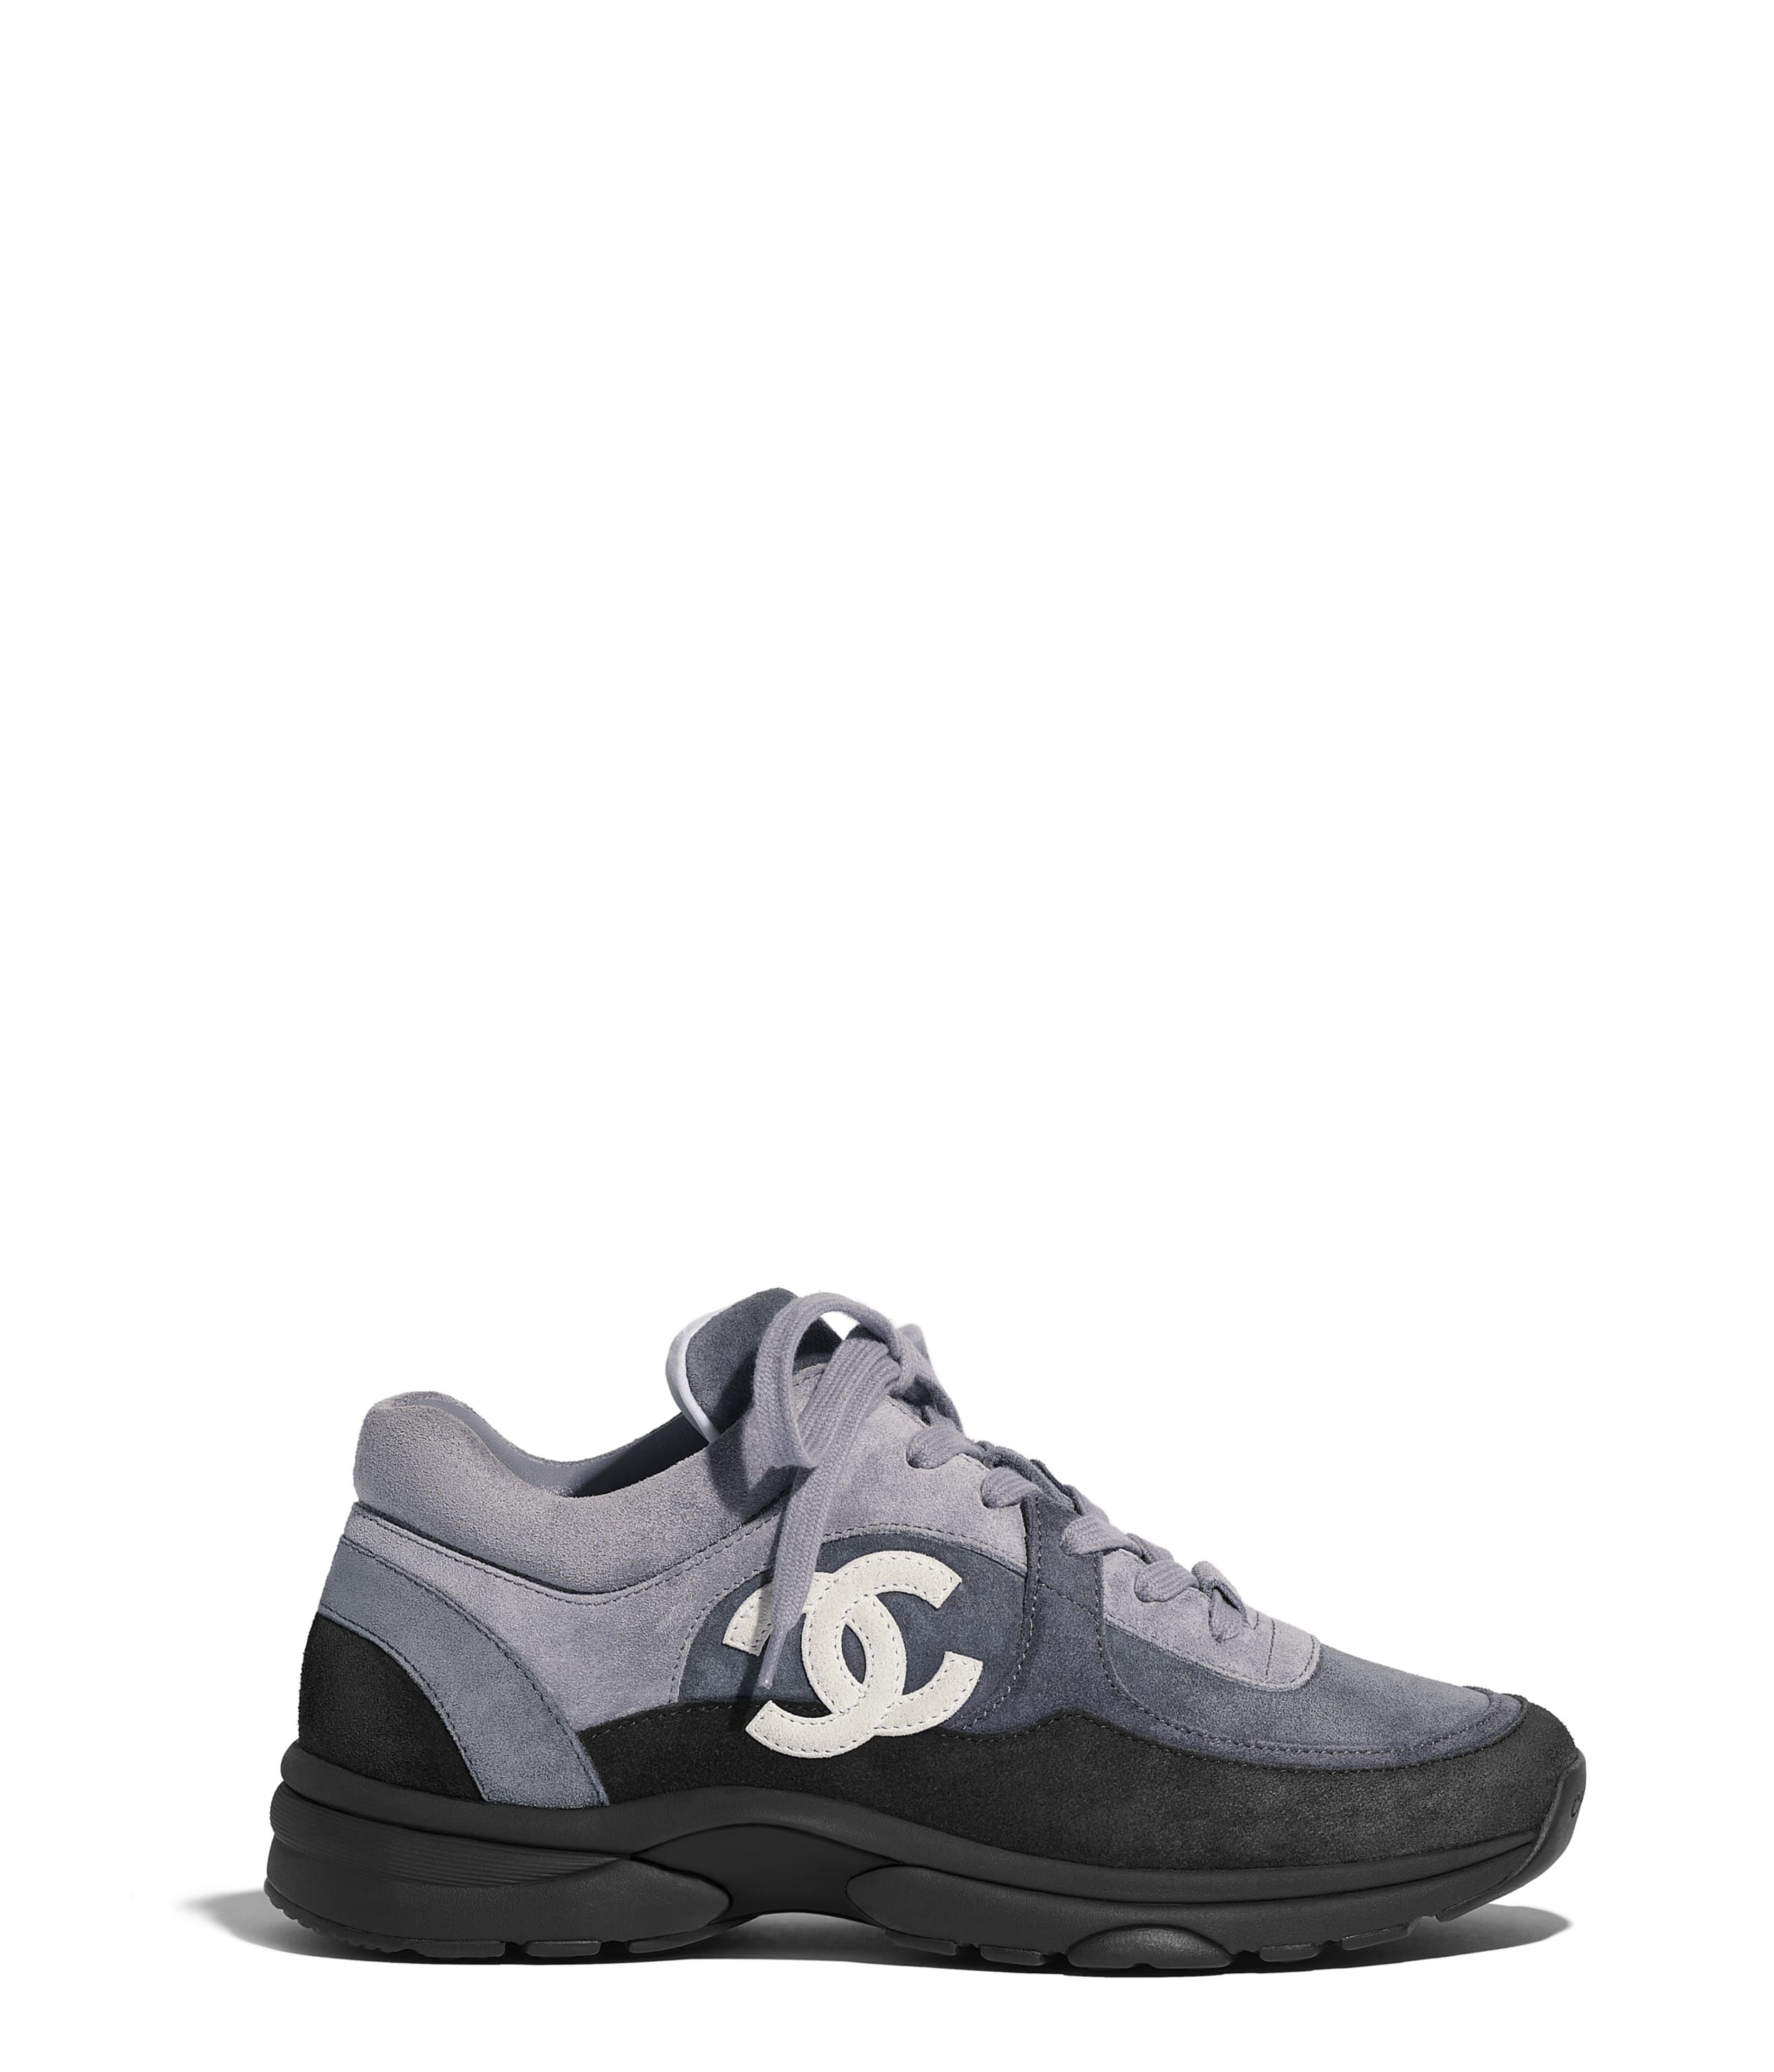 fashion, Chanel shoes, Sneakers